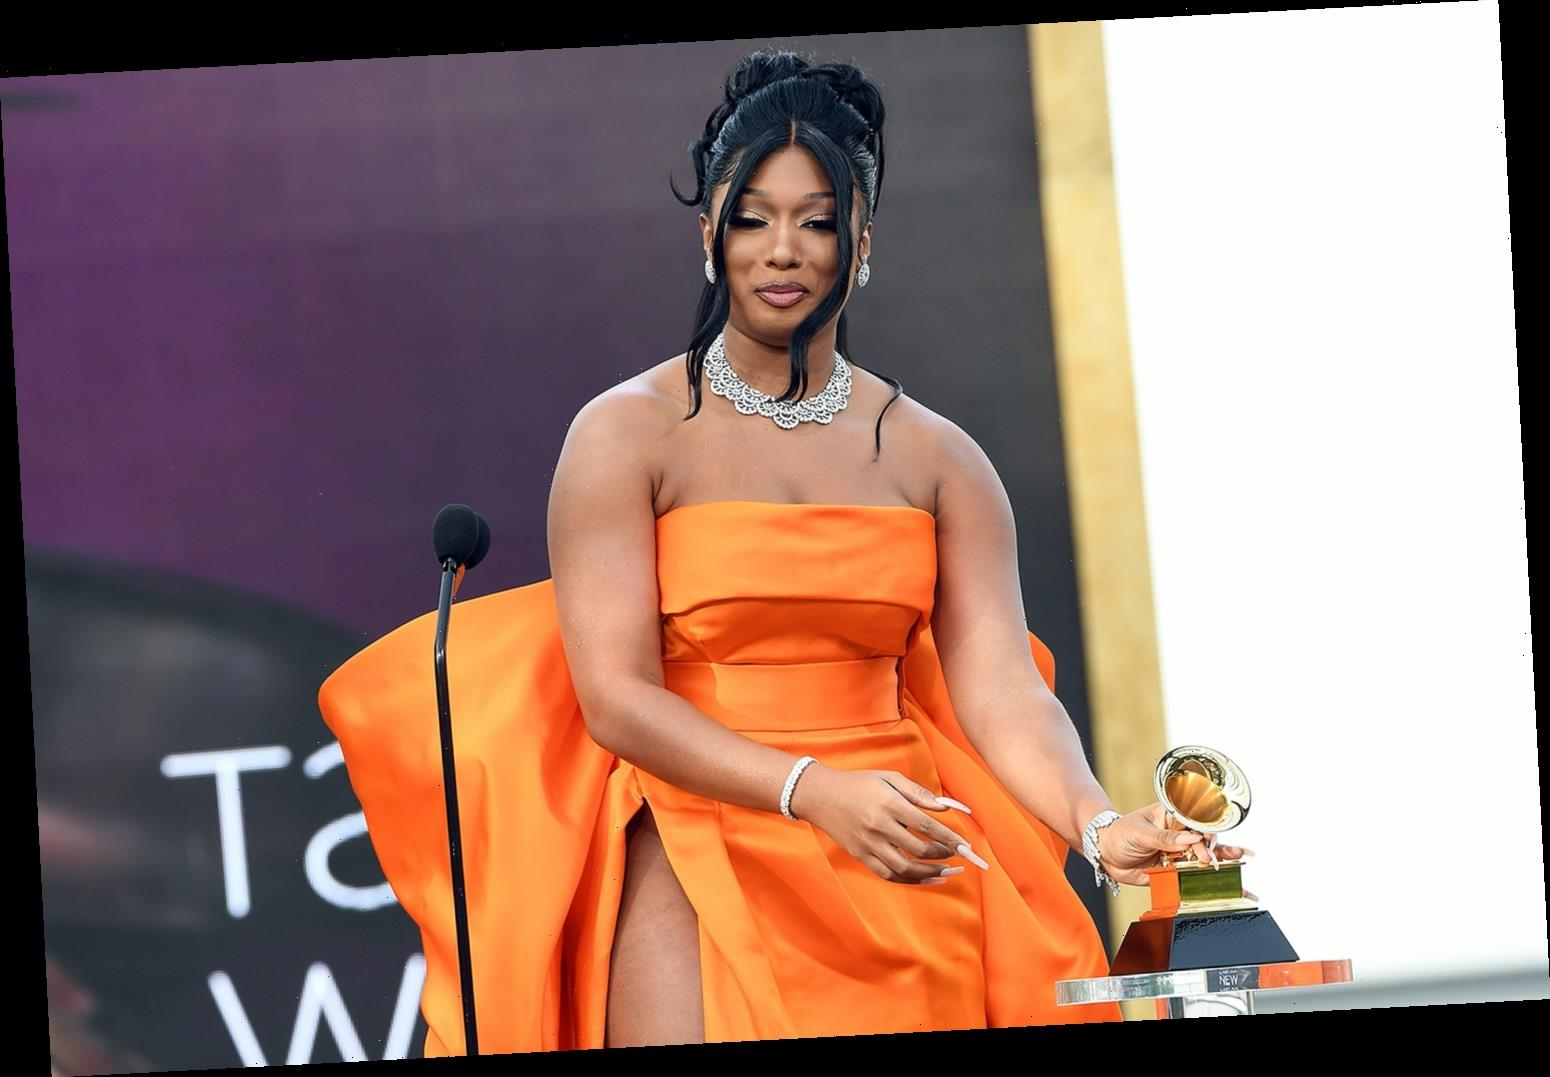 Megan Thee Stallion Thanks Her Late Mom in Best New Artist Acceptance at the Grammys